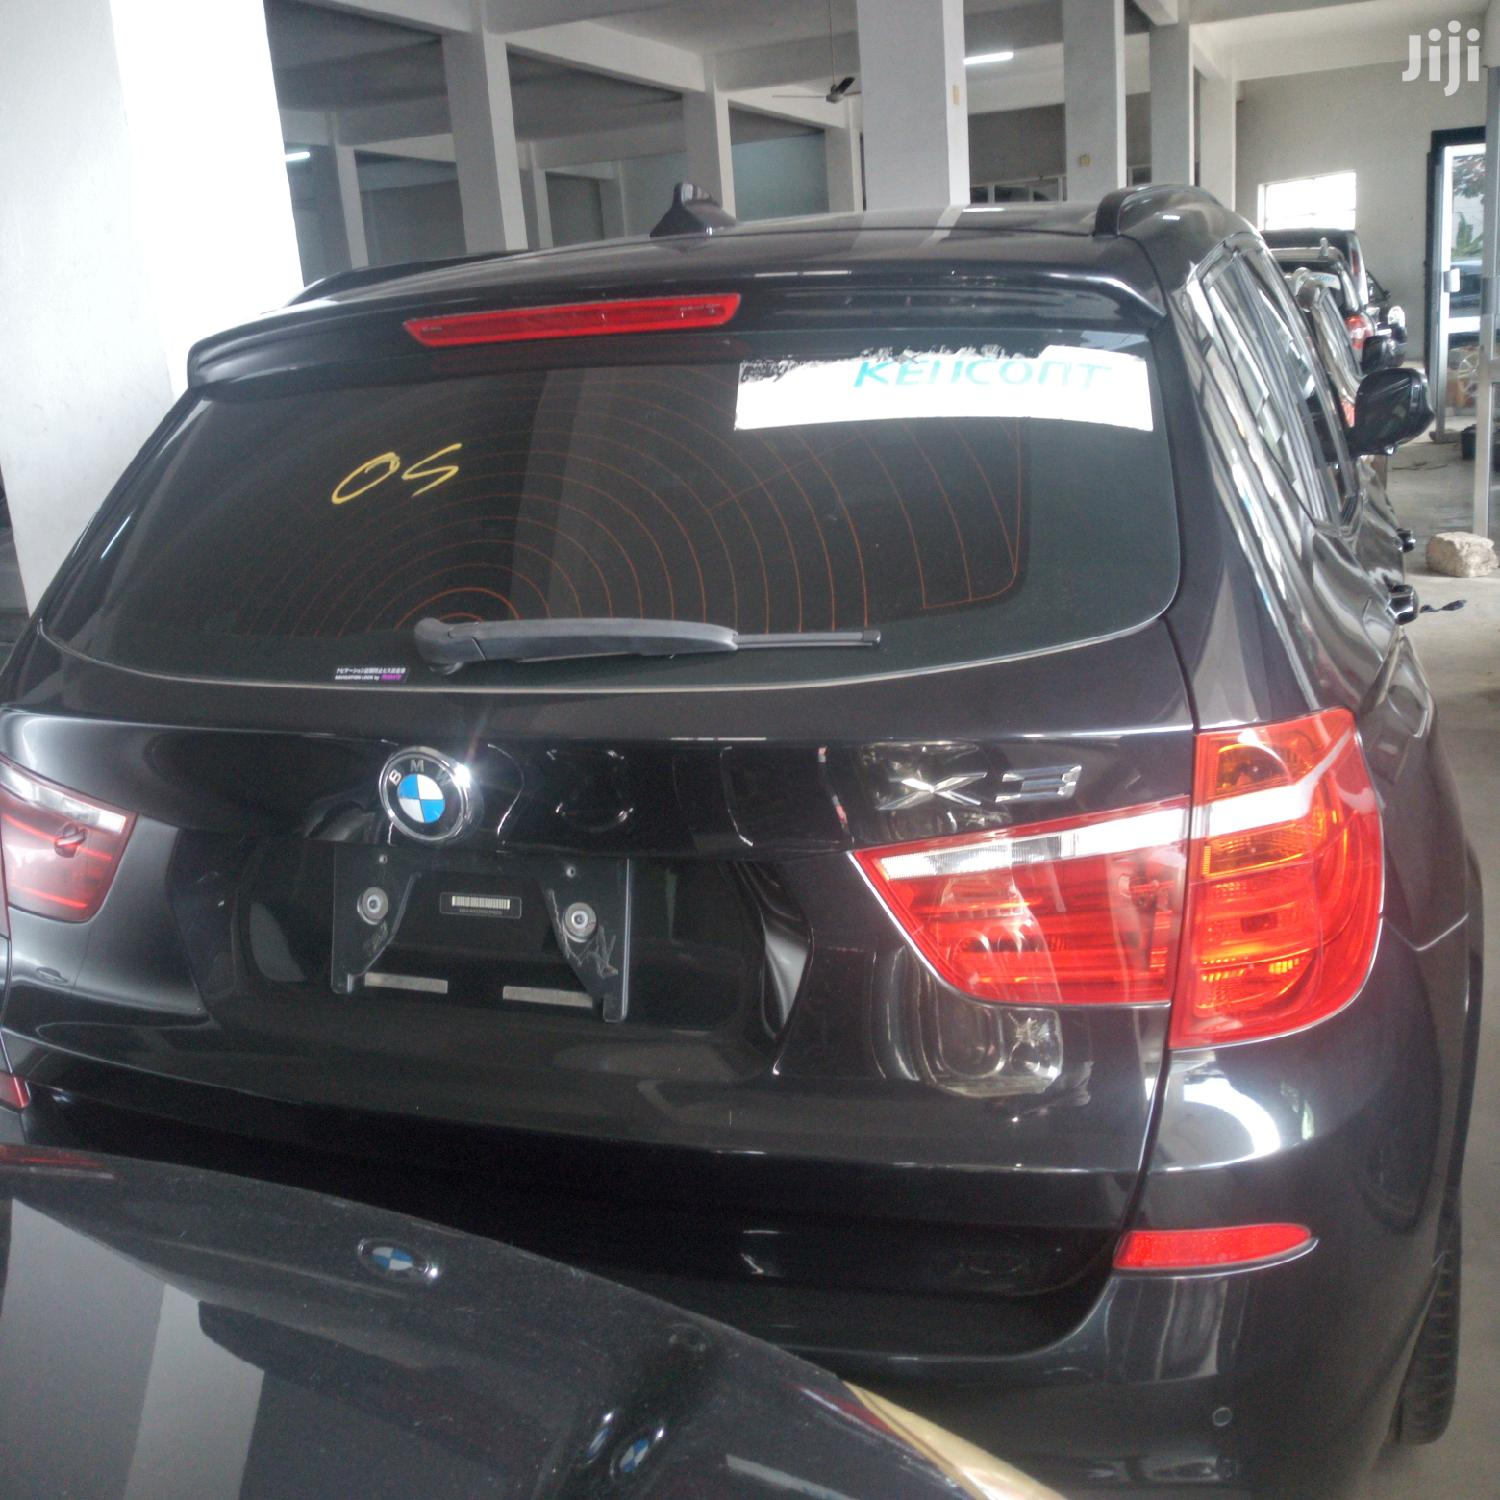 Bmw X3 2012 Black In Shimanzi Ganjoni Cars Meshack Kennedy Jiji Co Ke For Sale In Shimanzi Ganjoni Buy Cars From Meshack Kennedy On Jiji Co Ke